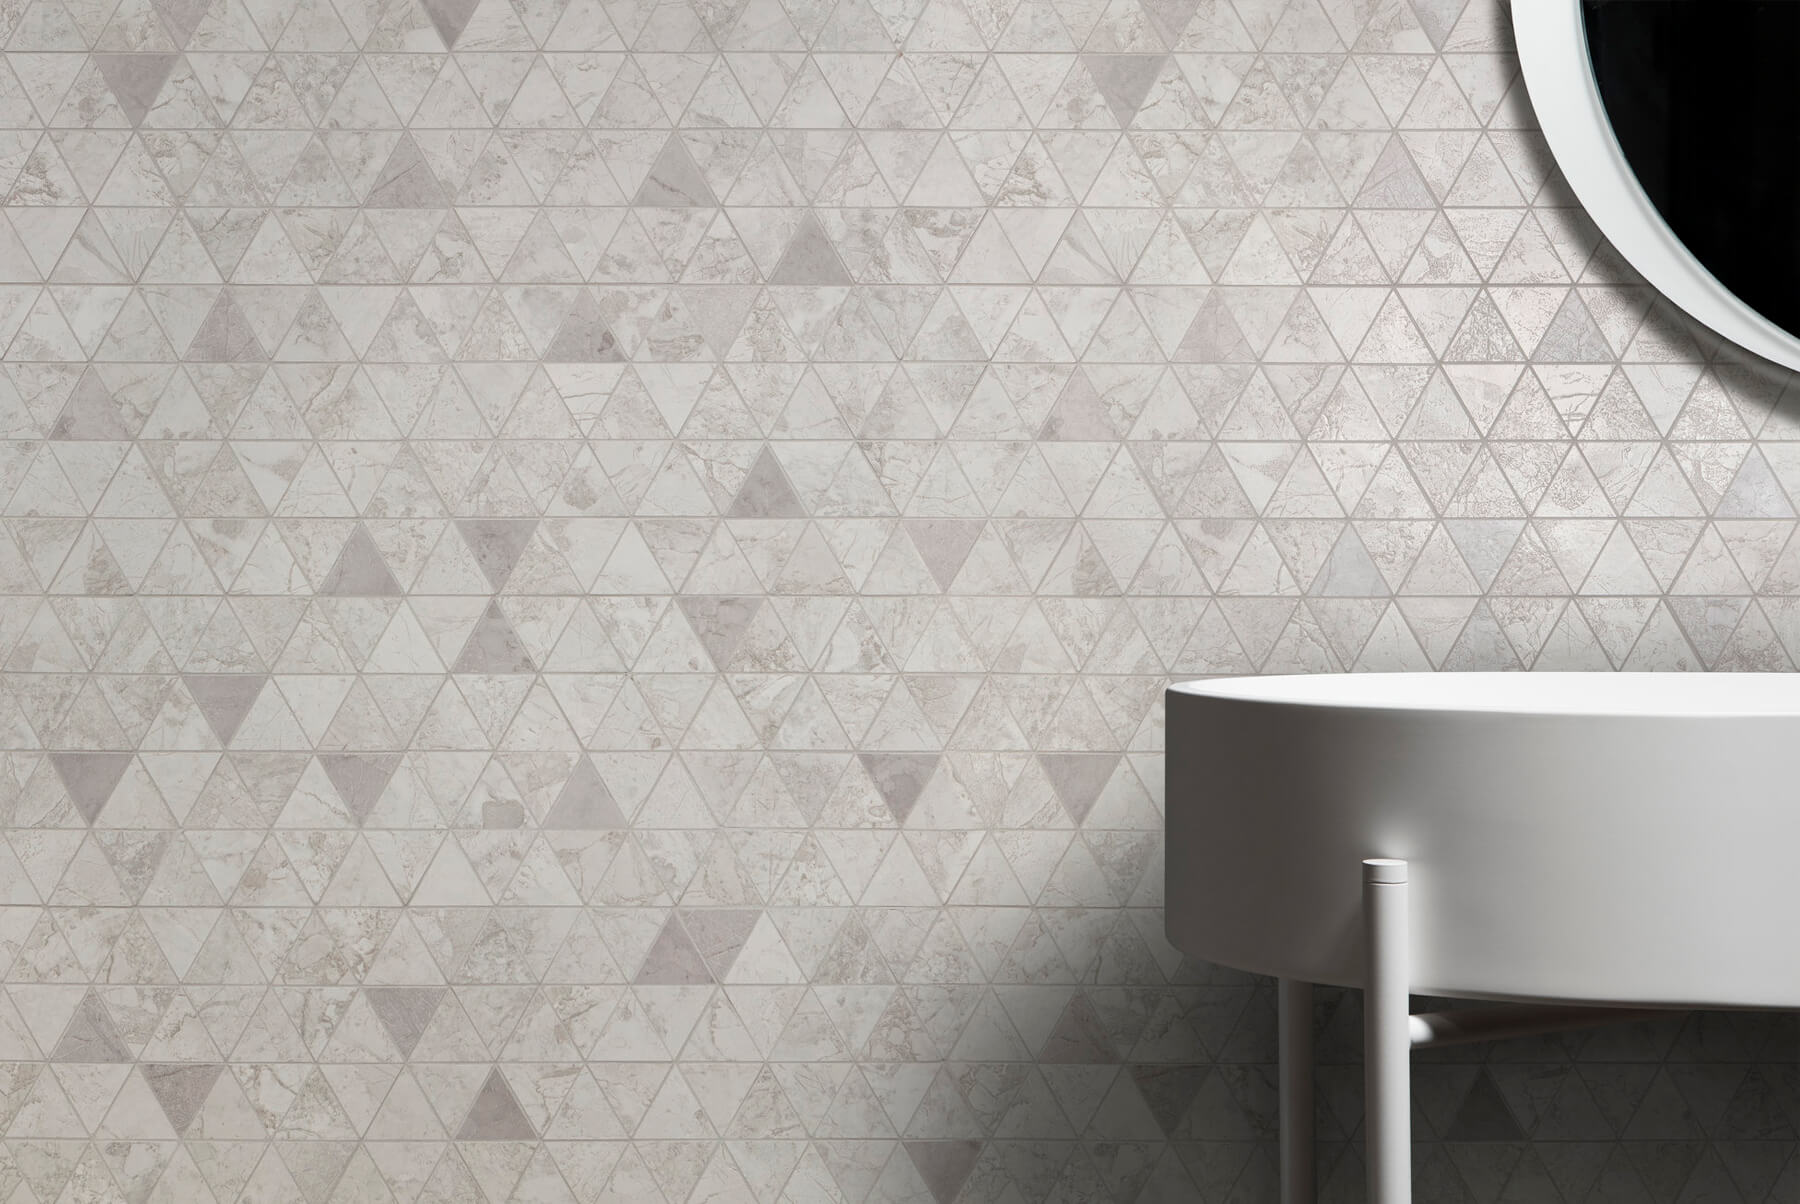 TILES-DREAMY-MARBLE-INSET-7-1800x1204